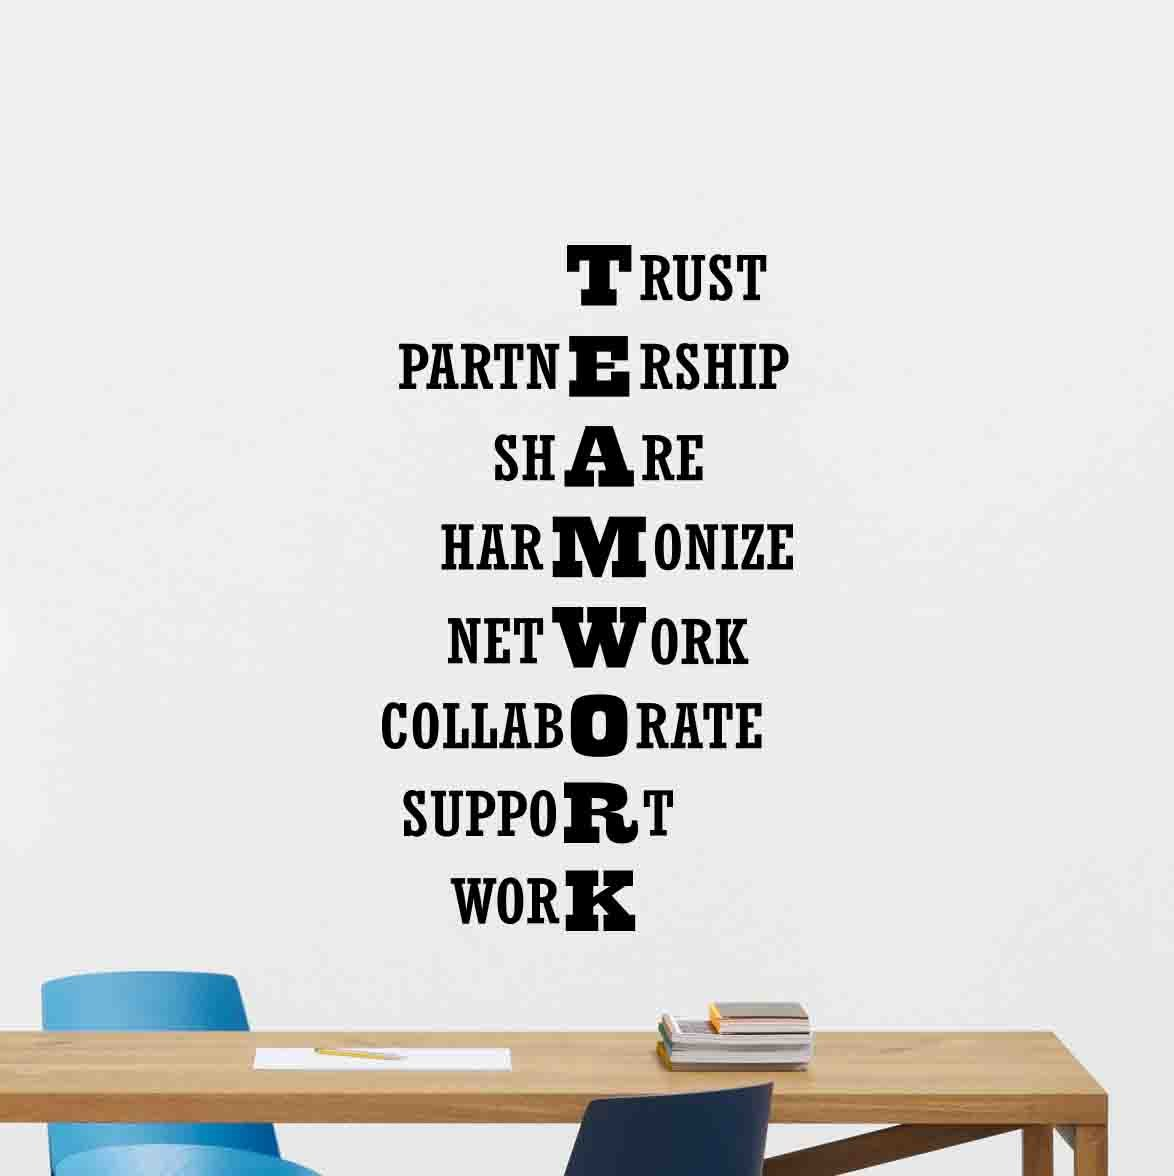 Teamwork wall decal office quote sign words motivational gift inspirational lettering word cloud vinyl sticker print business wall art room design decor